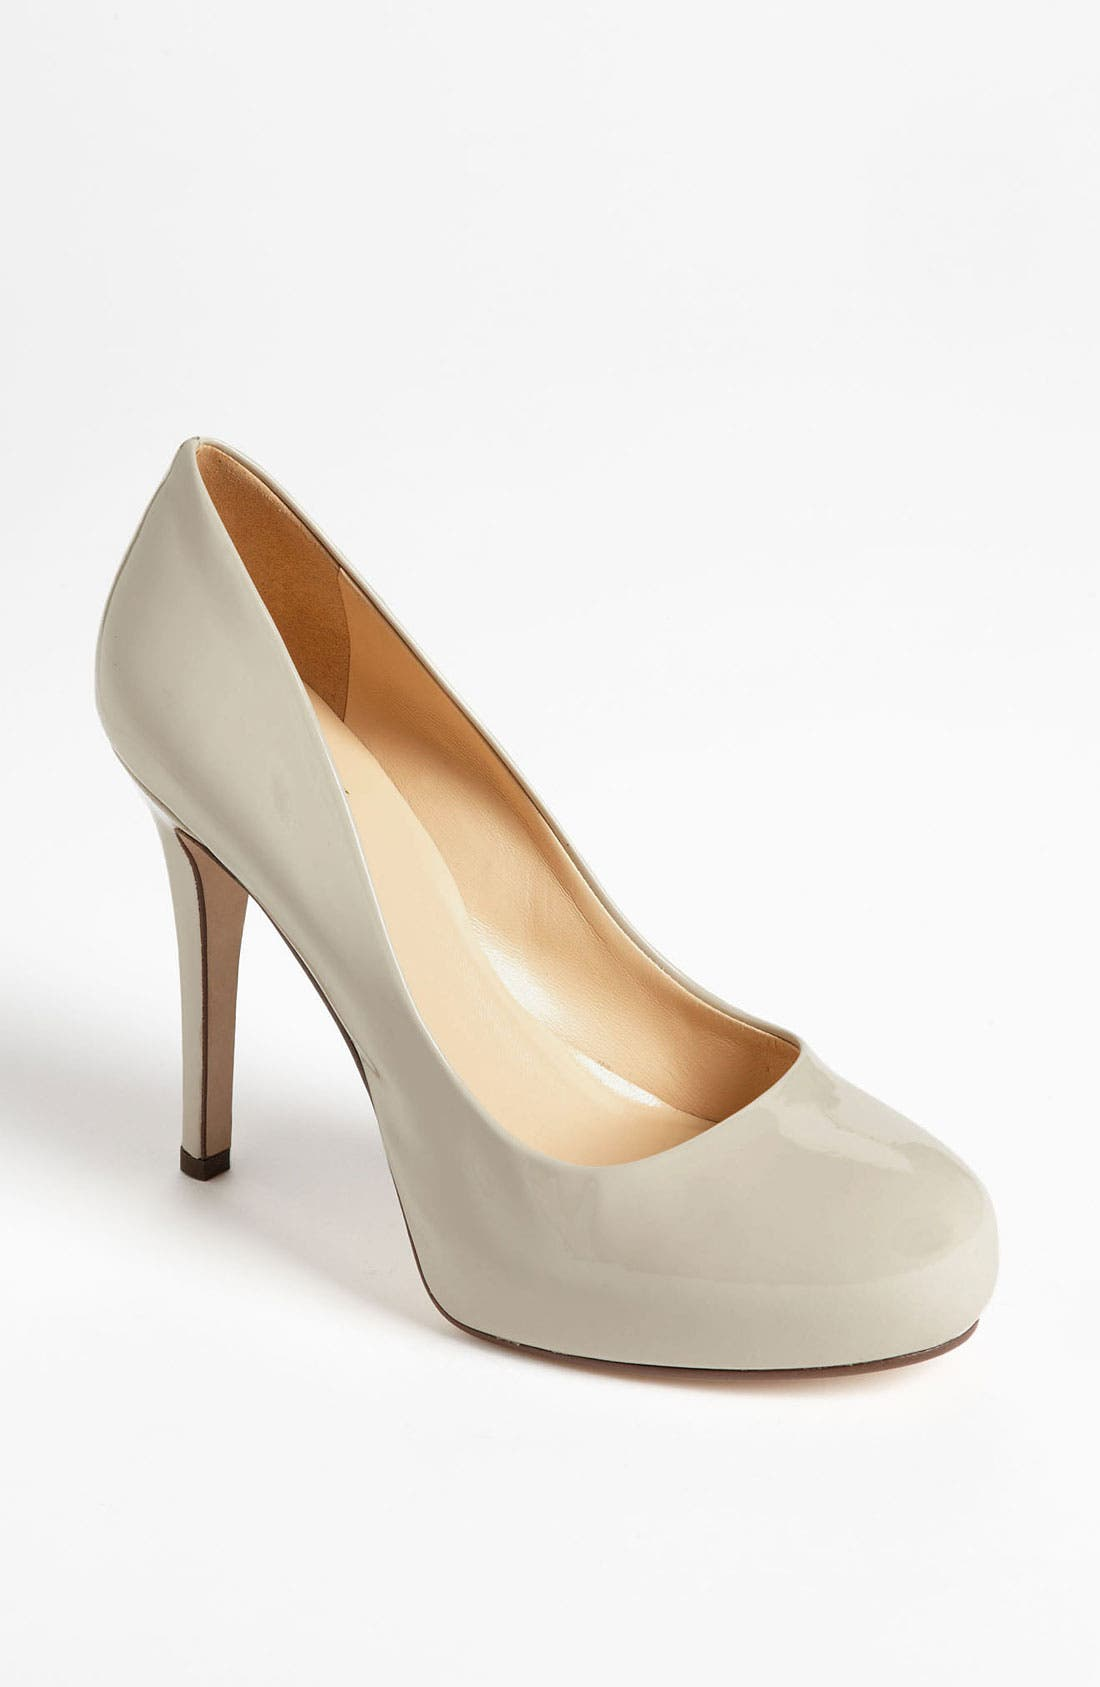 Main Image - kate spade new york 'lori' pump